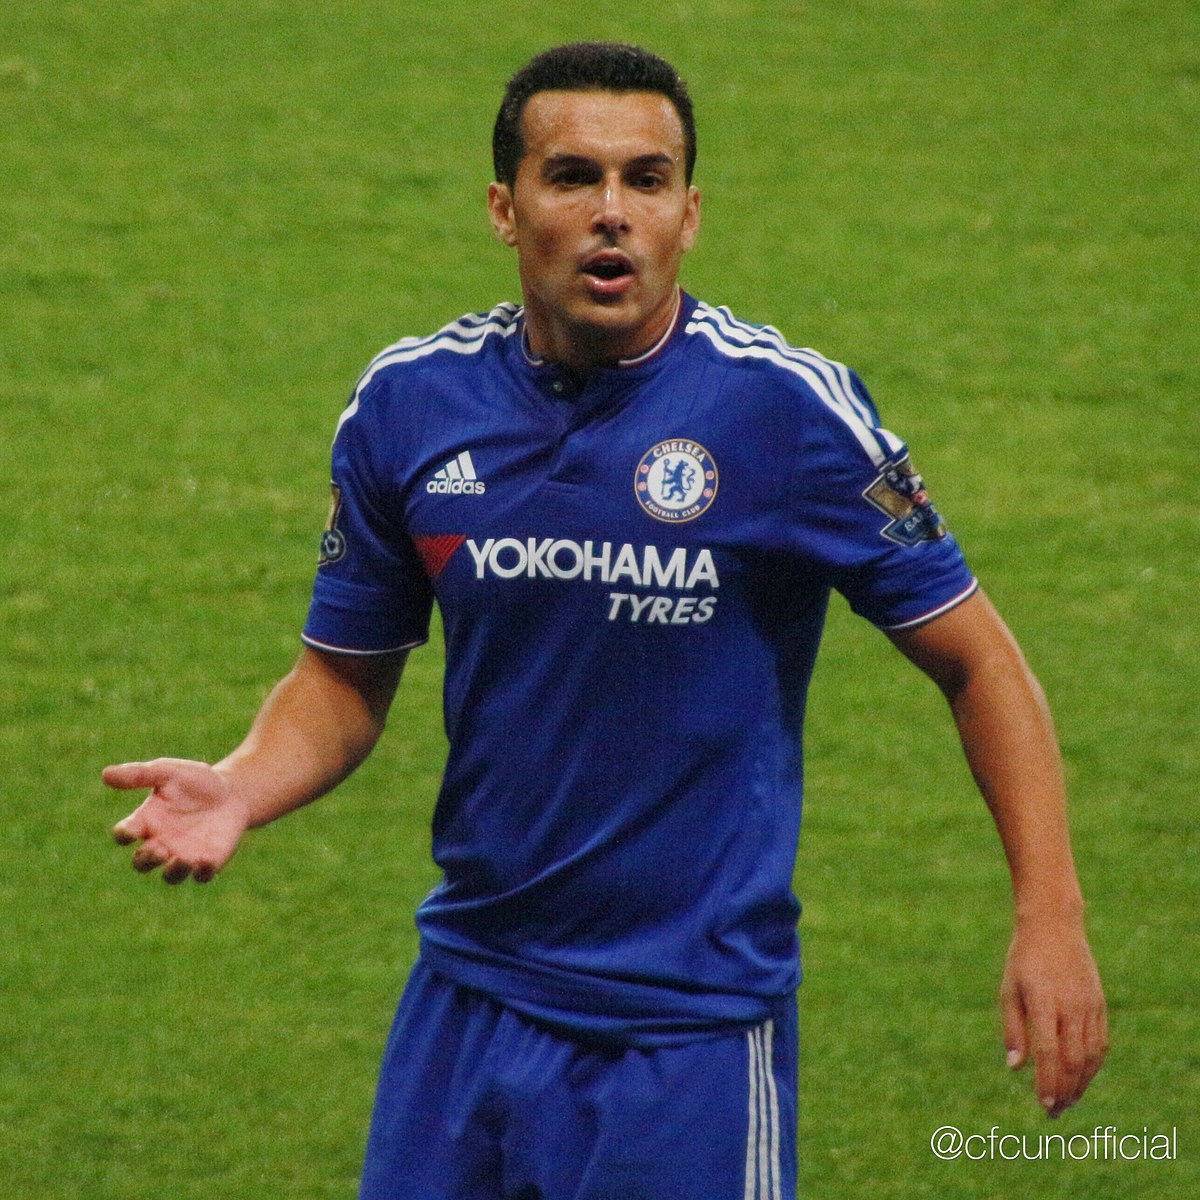 Pedro footballer born July 1987